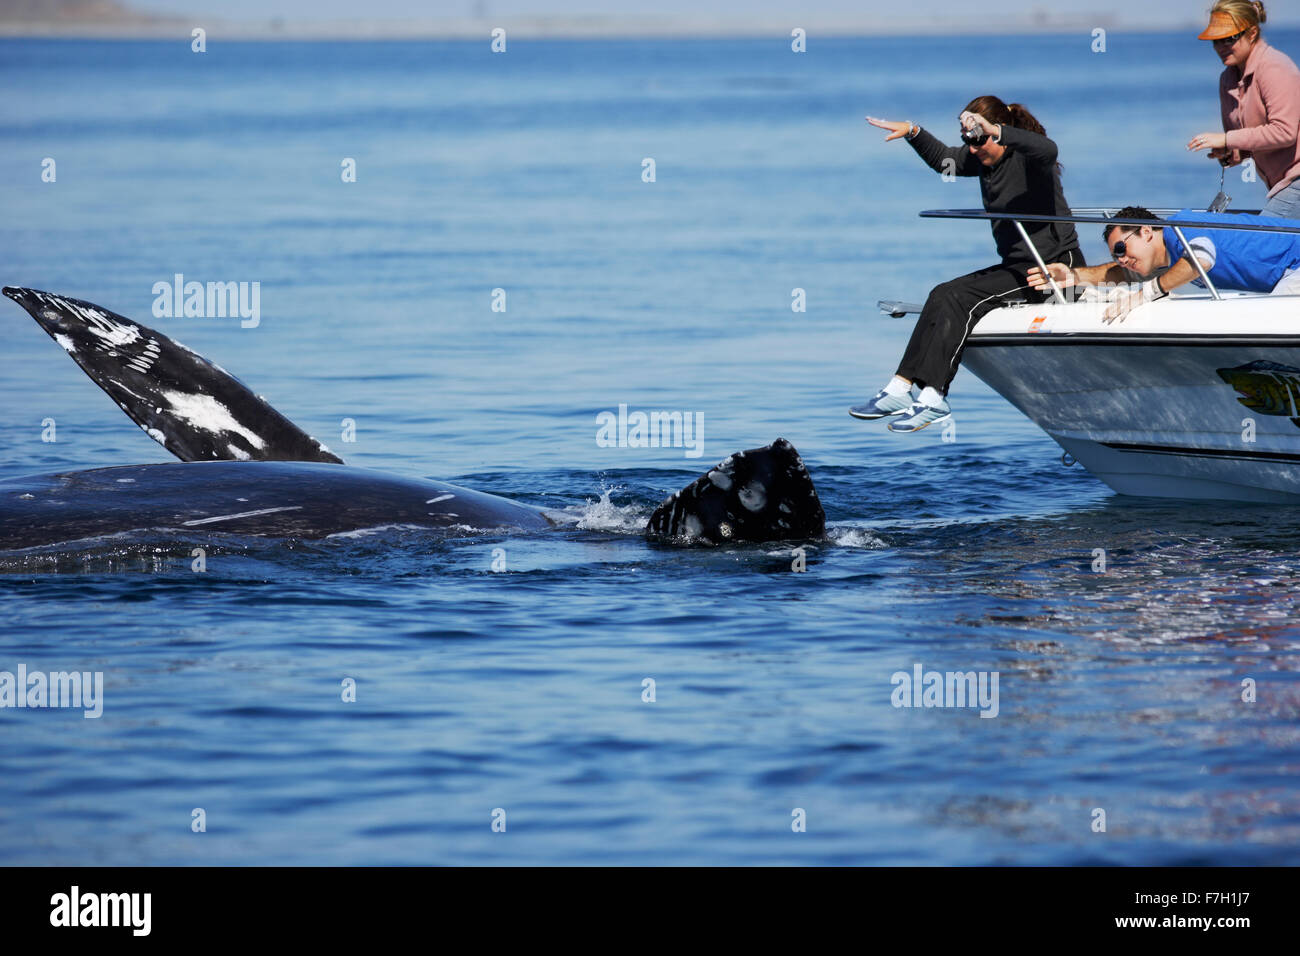 pr0044-D. Gray Whale (Eschrichtius robustus) upside down, seemingly interacting with people on boat. Magdalena Bay, - Stock Image